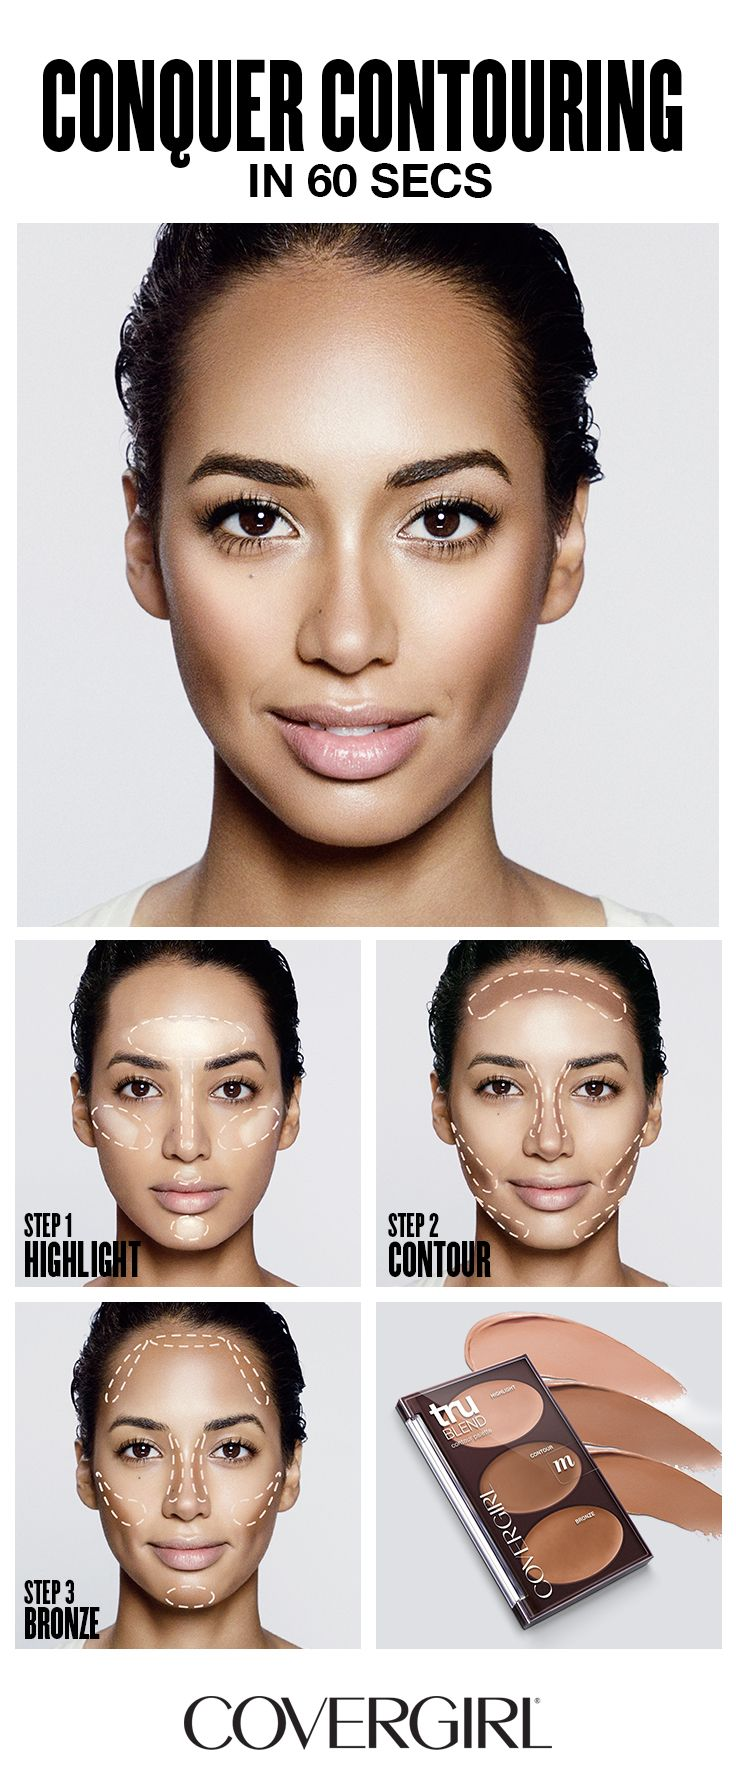 Covergirl Shows You How To Contour Your Face In 60 Seconds! Follow  Covergirl's Step